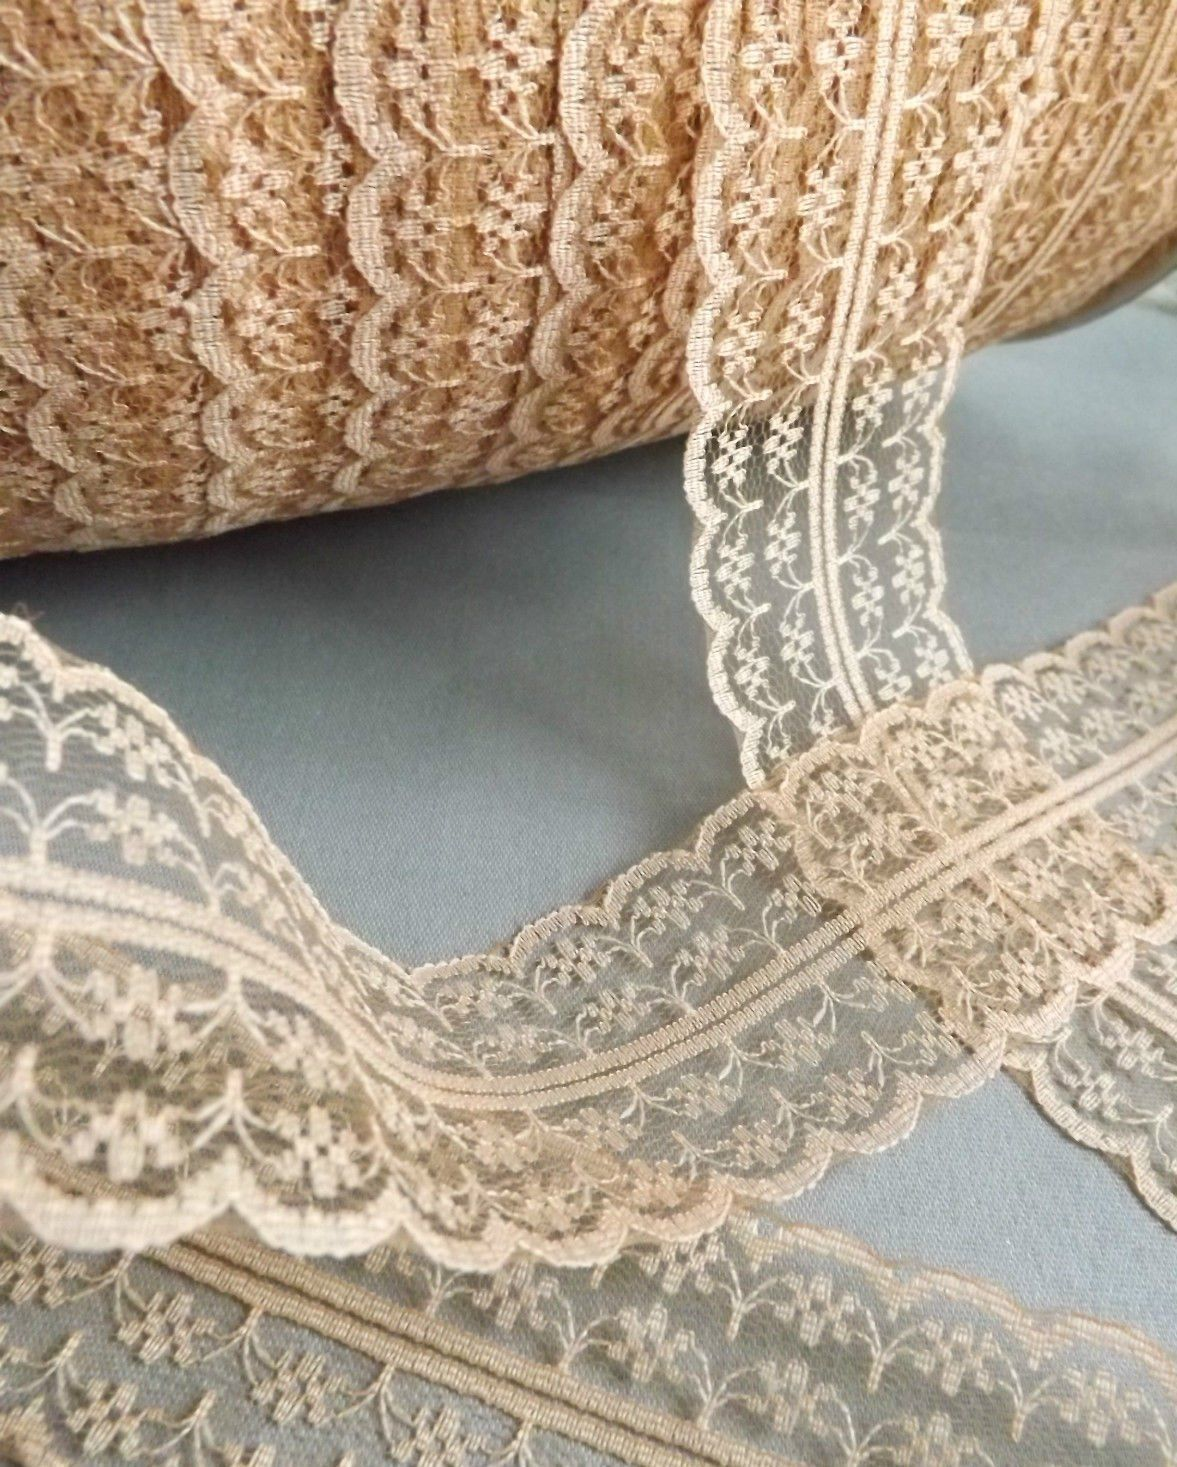 Ribbon Queen Vintage Style Lace Ribbon Trimming Bridal Wedding Scalloped Edge 47mm Vintage Cream Amazon Co Uk Kitchen H Lace Fabric Trimmings Lace Ribbon